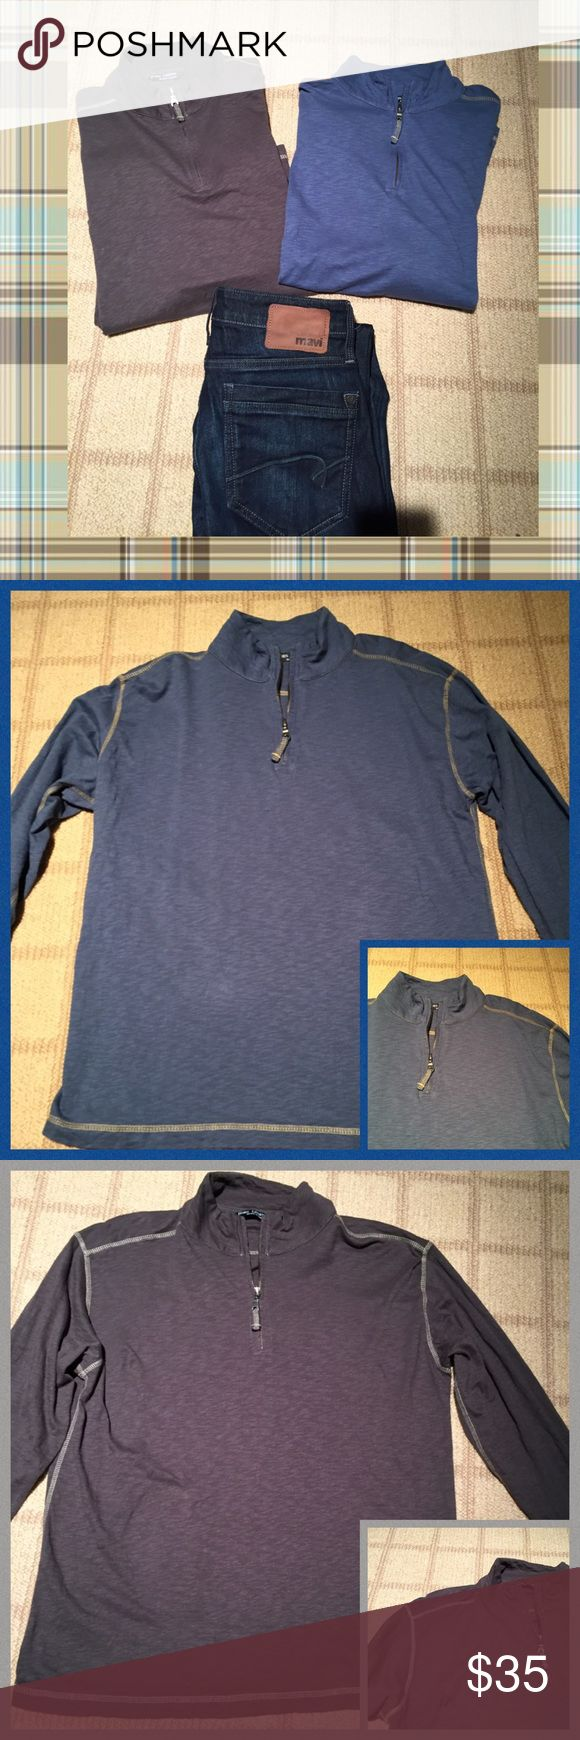 ✨Bundle of two Men's long sleeve 1/4 zip shirts✨ One in a blue and one in grey. Both have great stitching detail and 1/4 zip front. Great condition and quality! 100%cotton. Horn Legend Shirts Tees - Long Sleeve